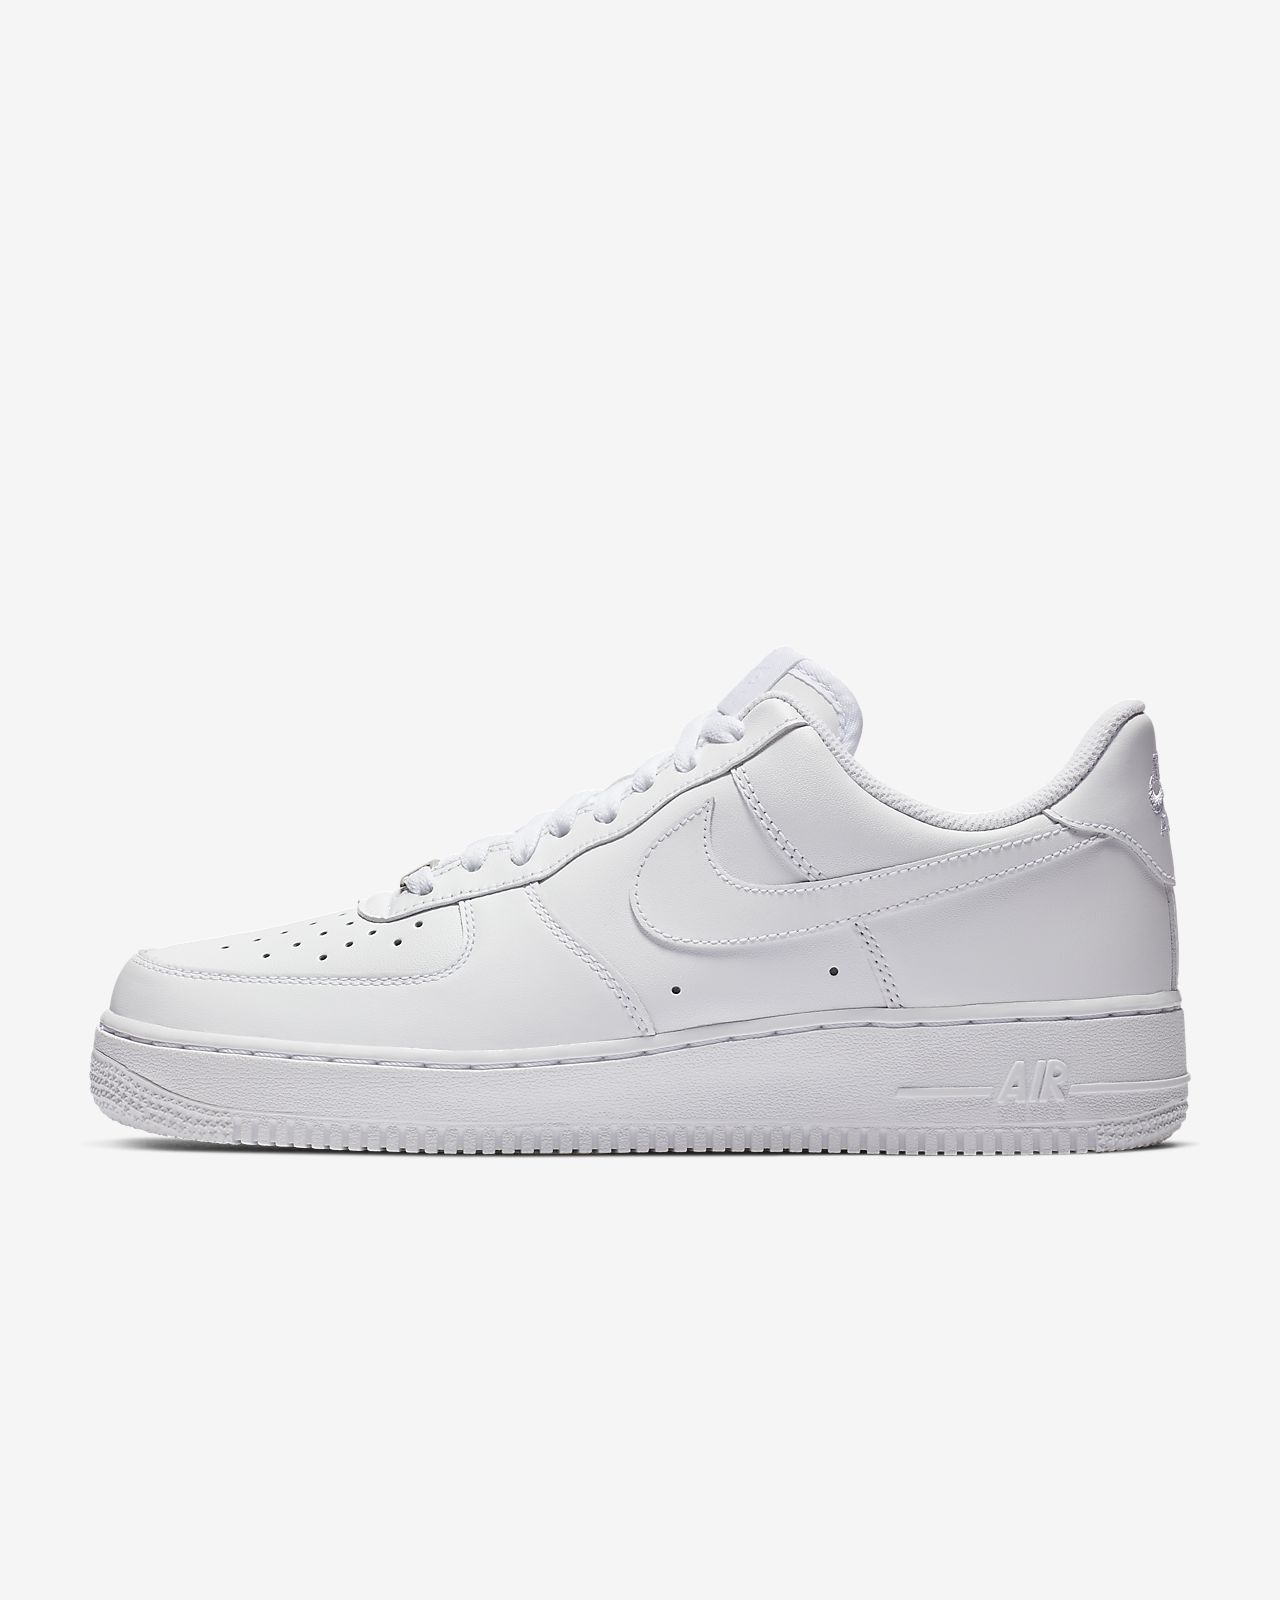 official photos 690b6 bb17e ... Calzado para mujer Nike Air Force 1  07